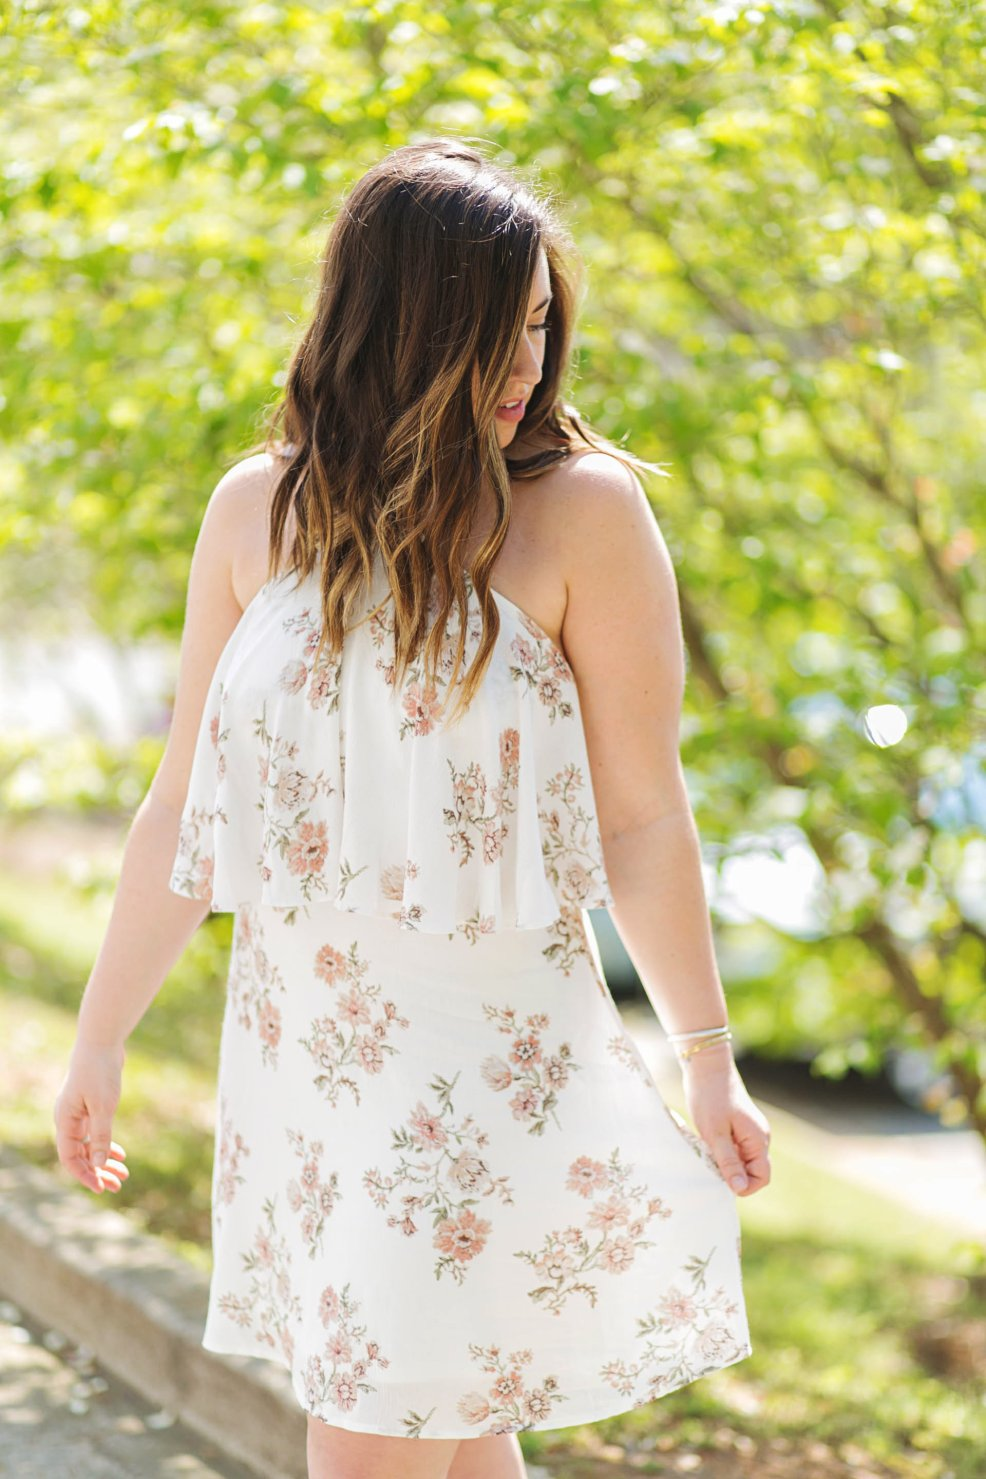 Floral Spring Dress | Just Peachy Blog